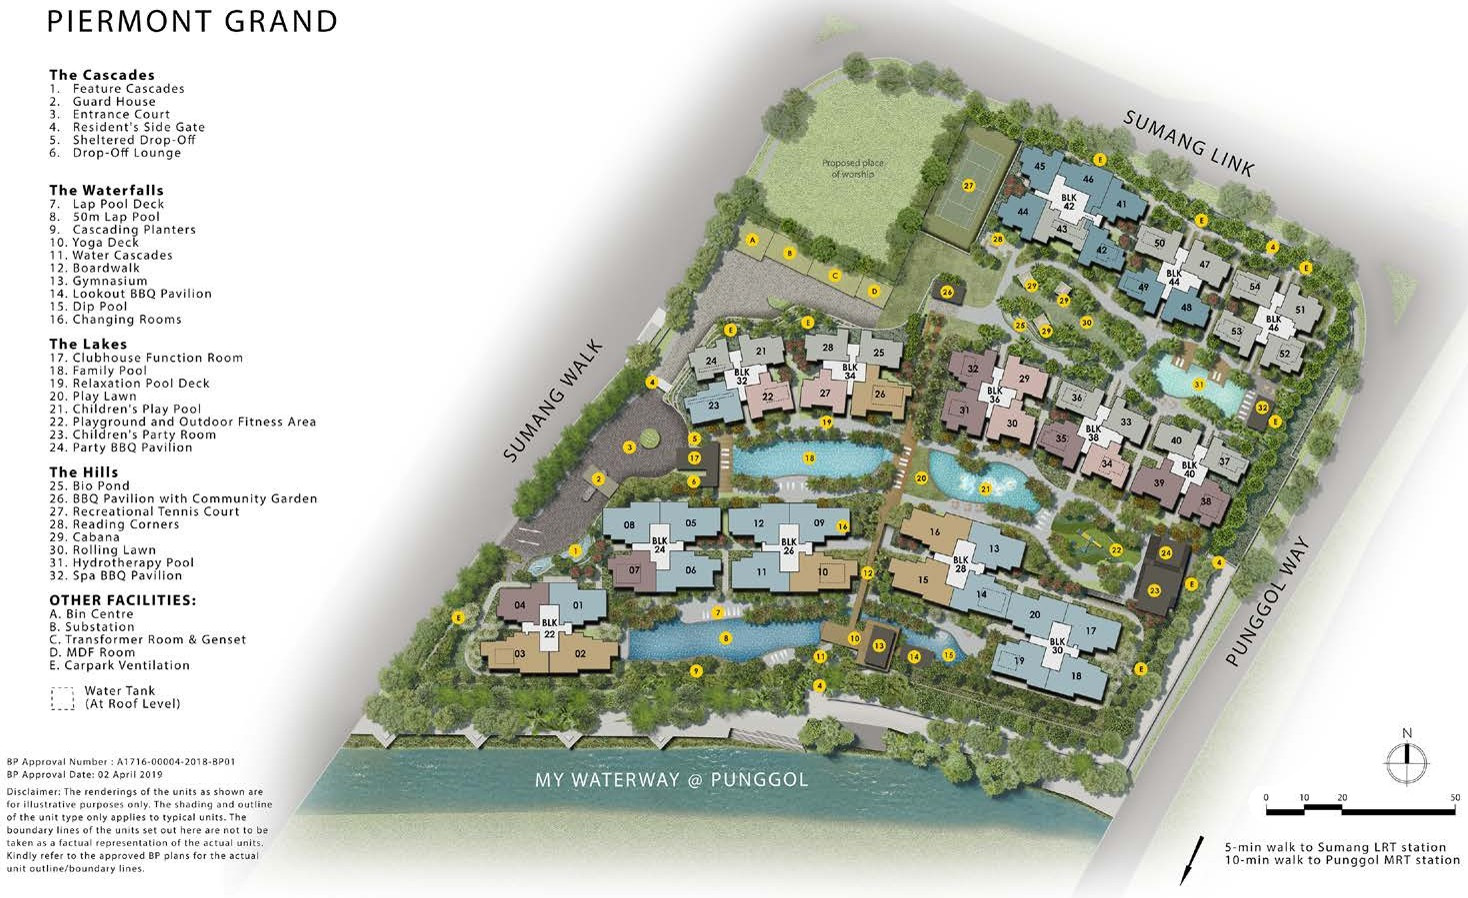 The Piermont Grand Site Plan